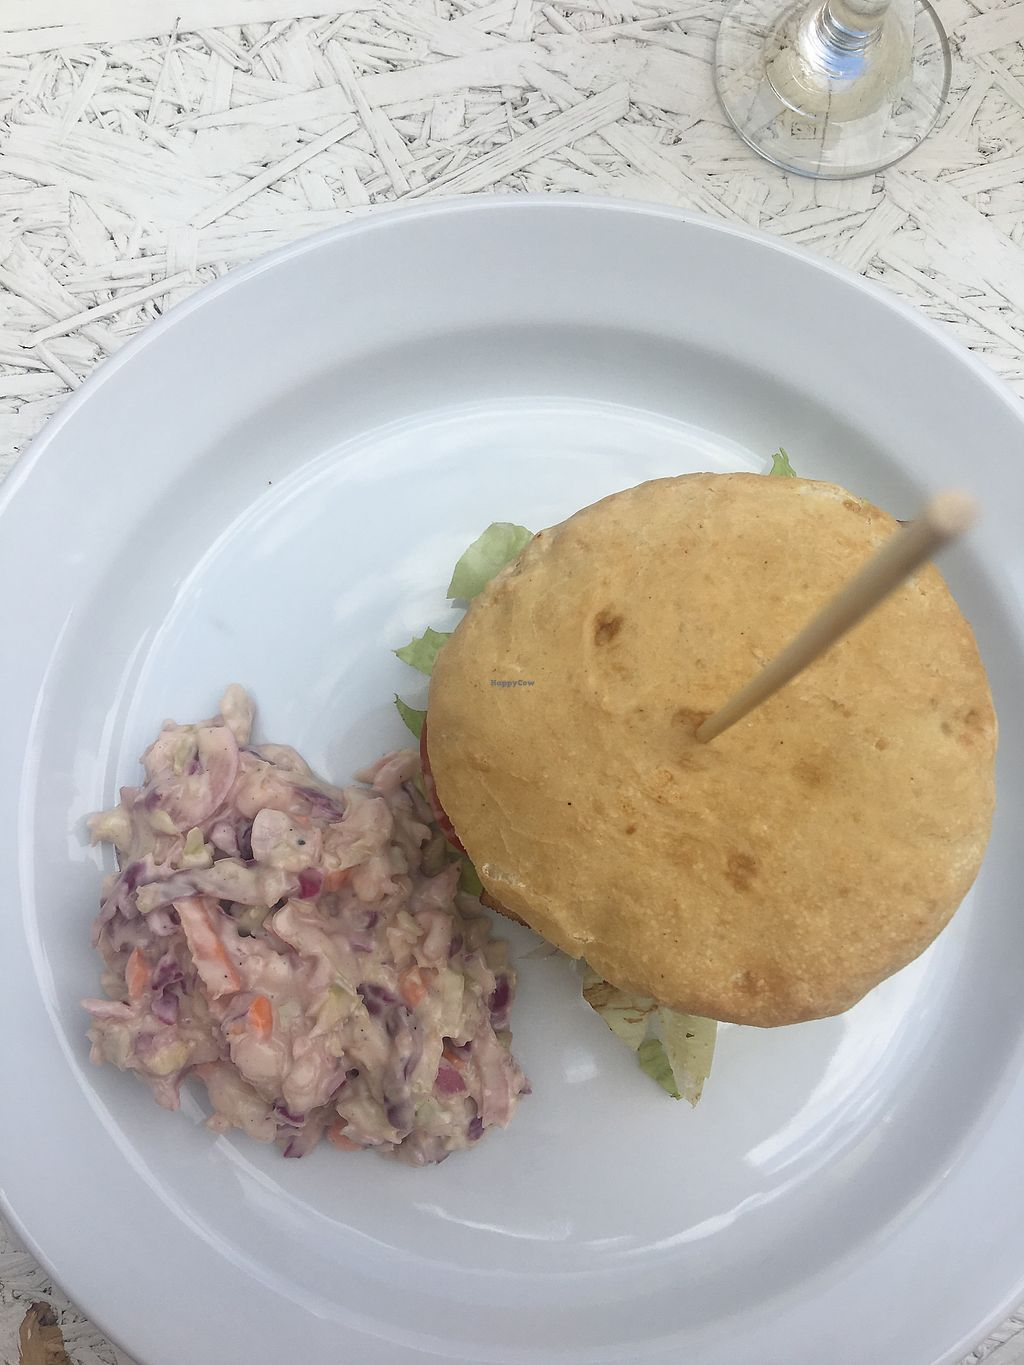 """Photo of Incruenti  by <a href=""""/members/profile/AndreaHafsi"""">AndreaHafsi</a> <br/>Burger with coleslaw  <br/> July 15, 2017  - <a href='/contact/abuse/image/78551/280741'>Report</a>"""